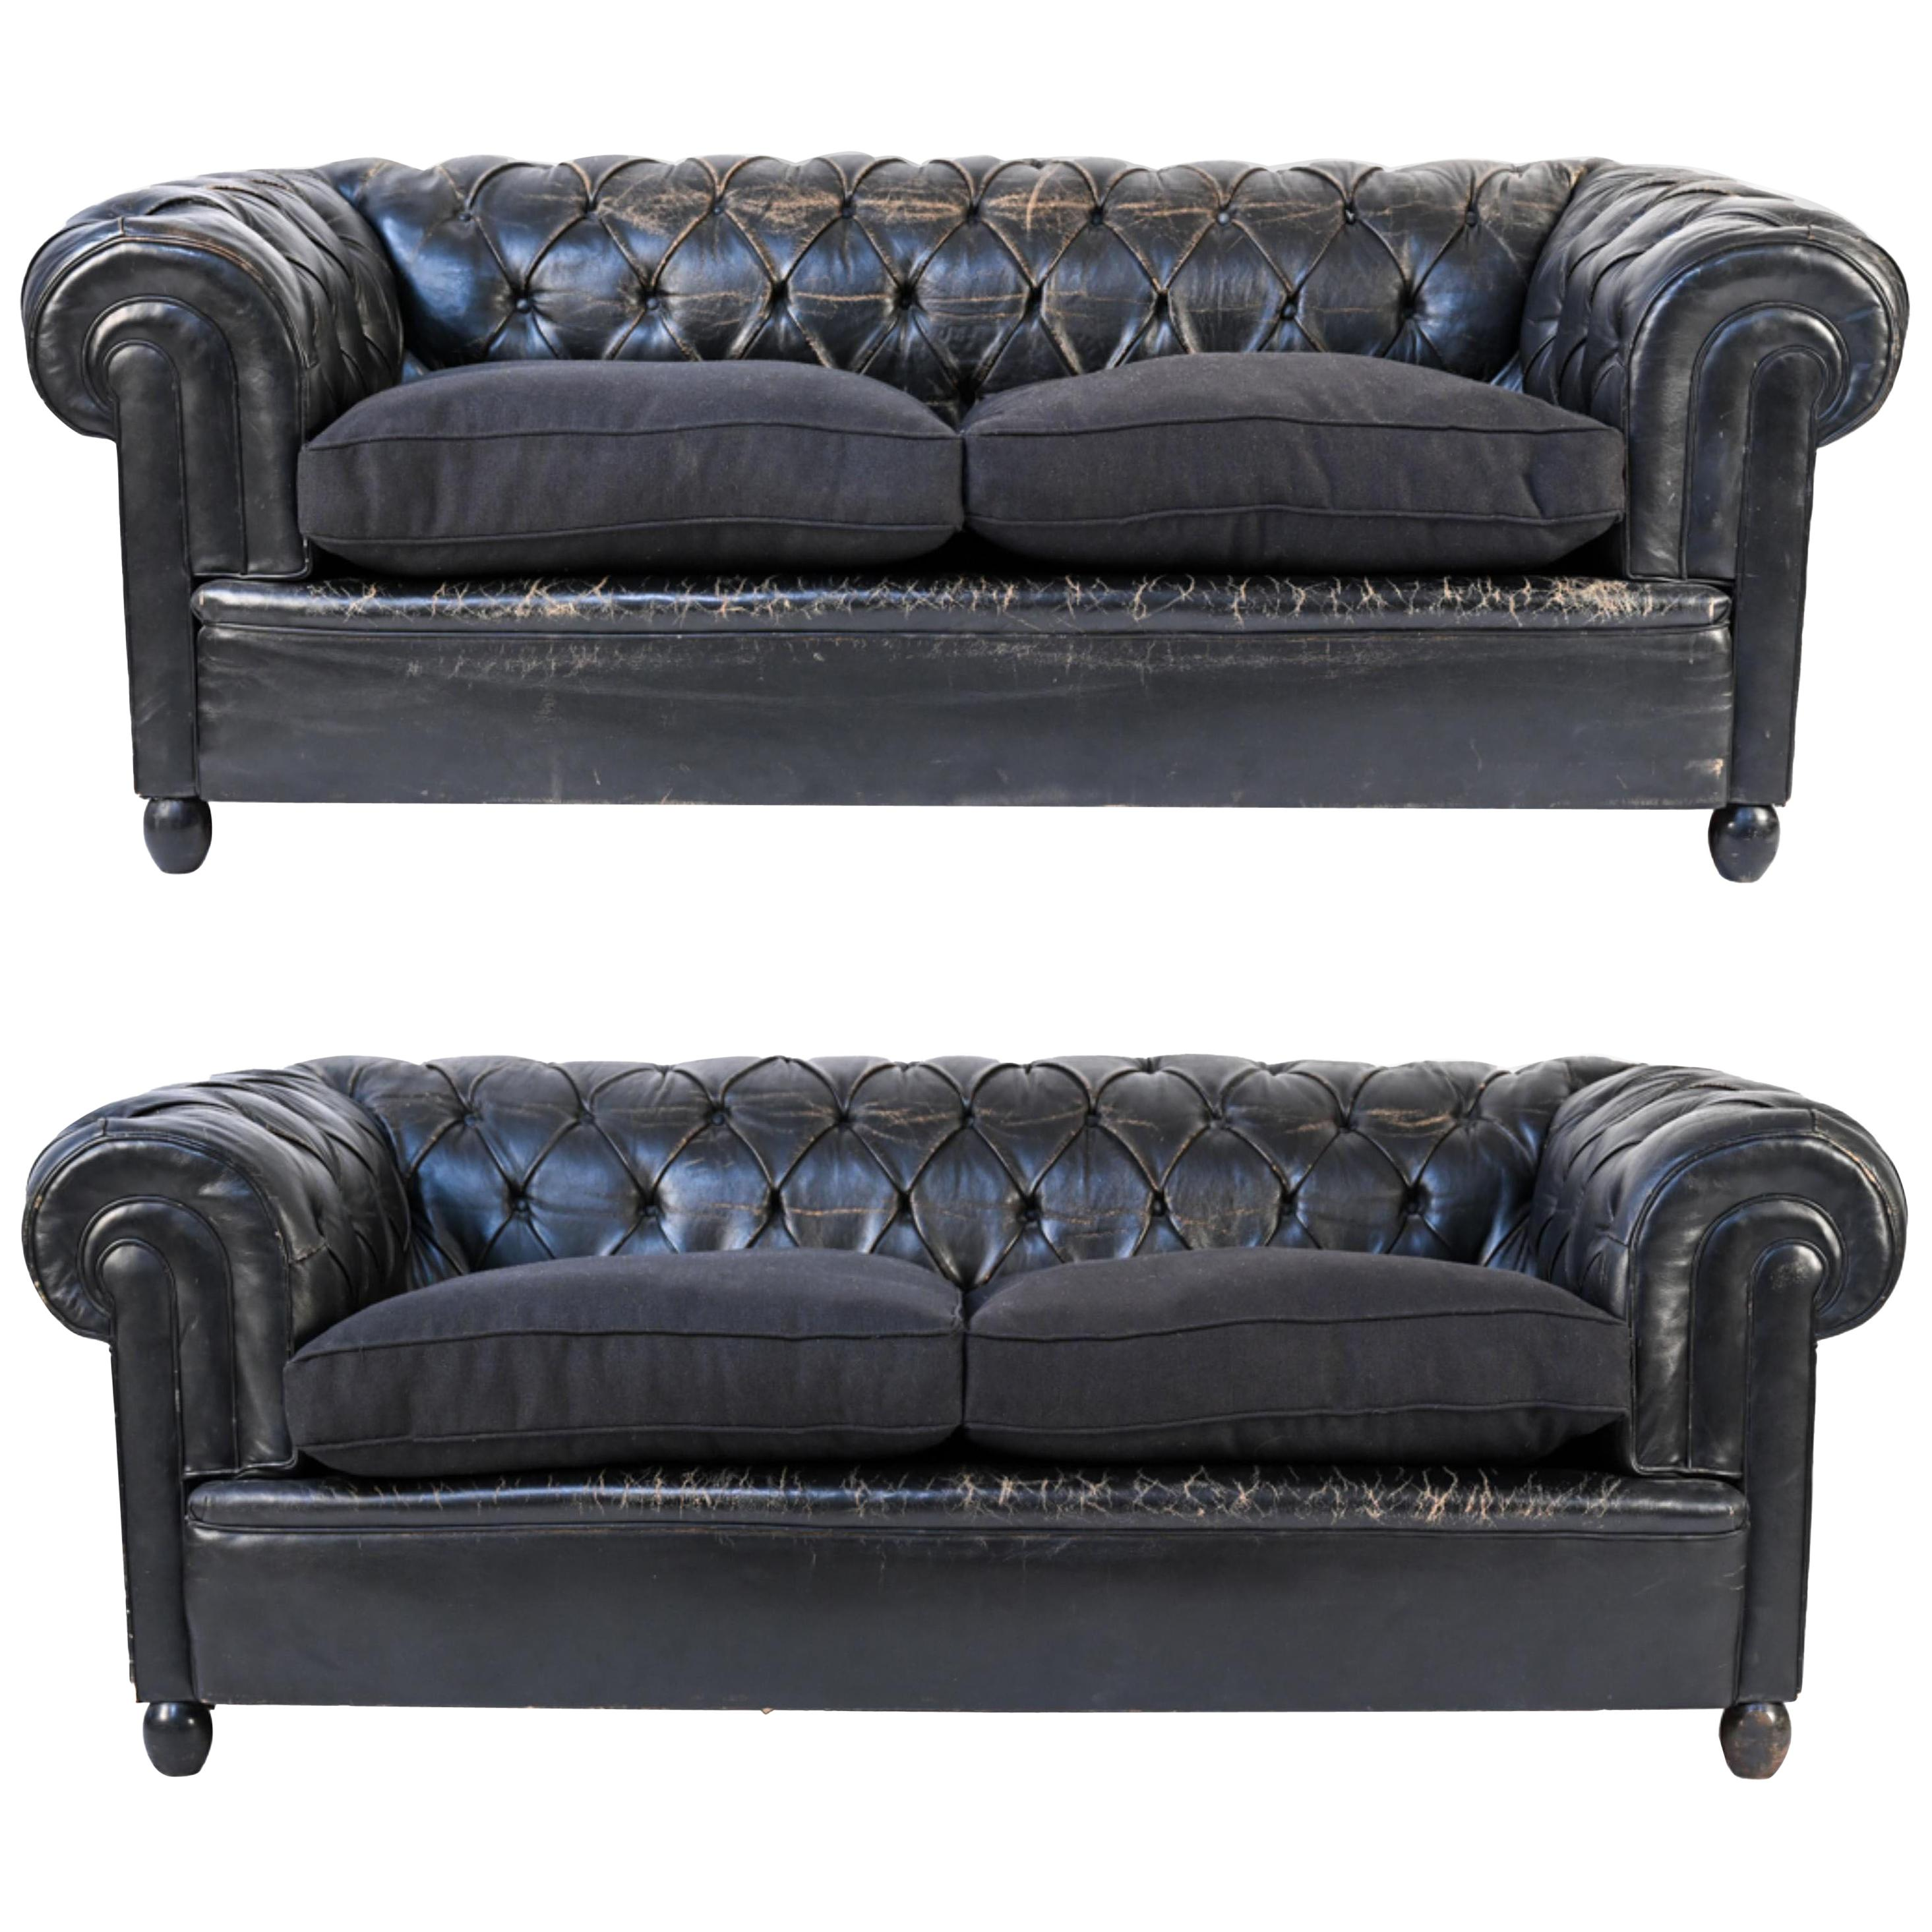 Vintage Tufted Leather Chesterfield Sofas, a Pair